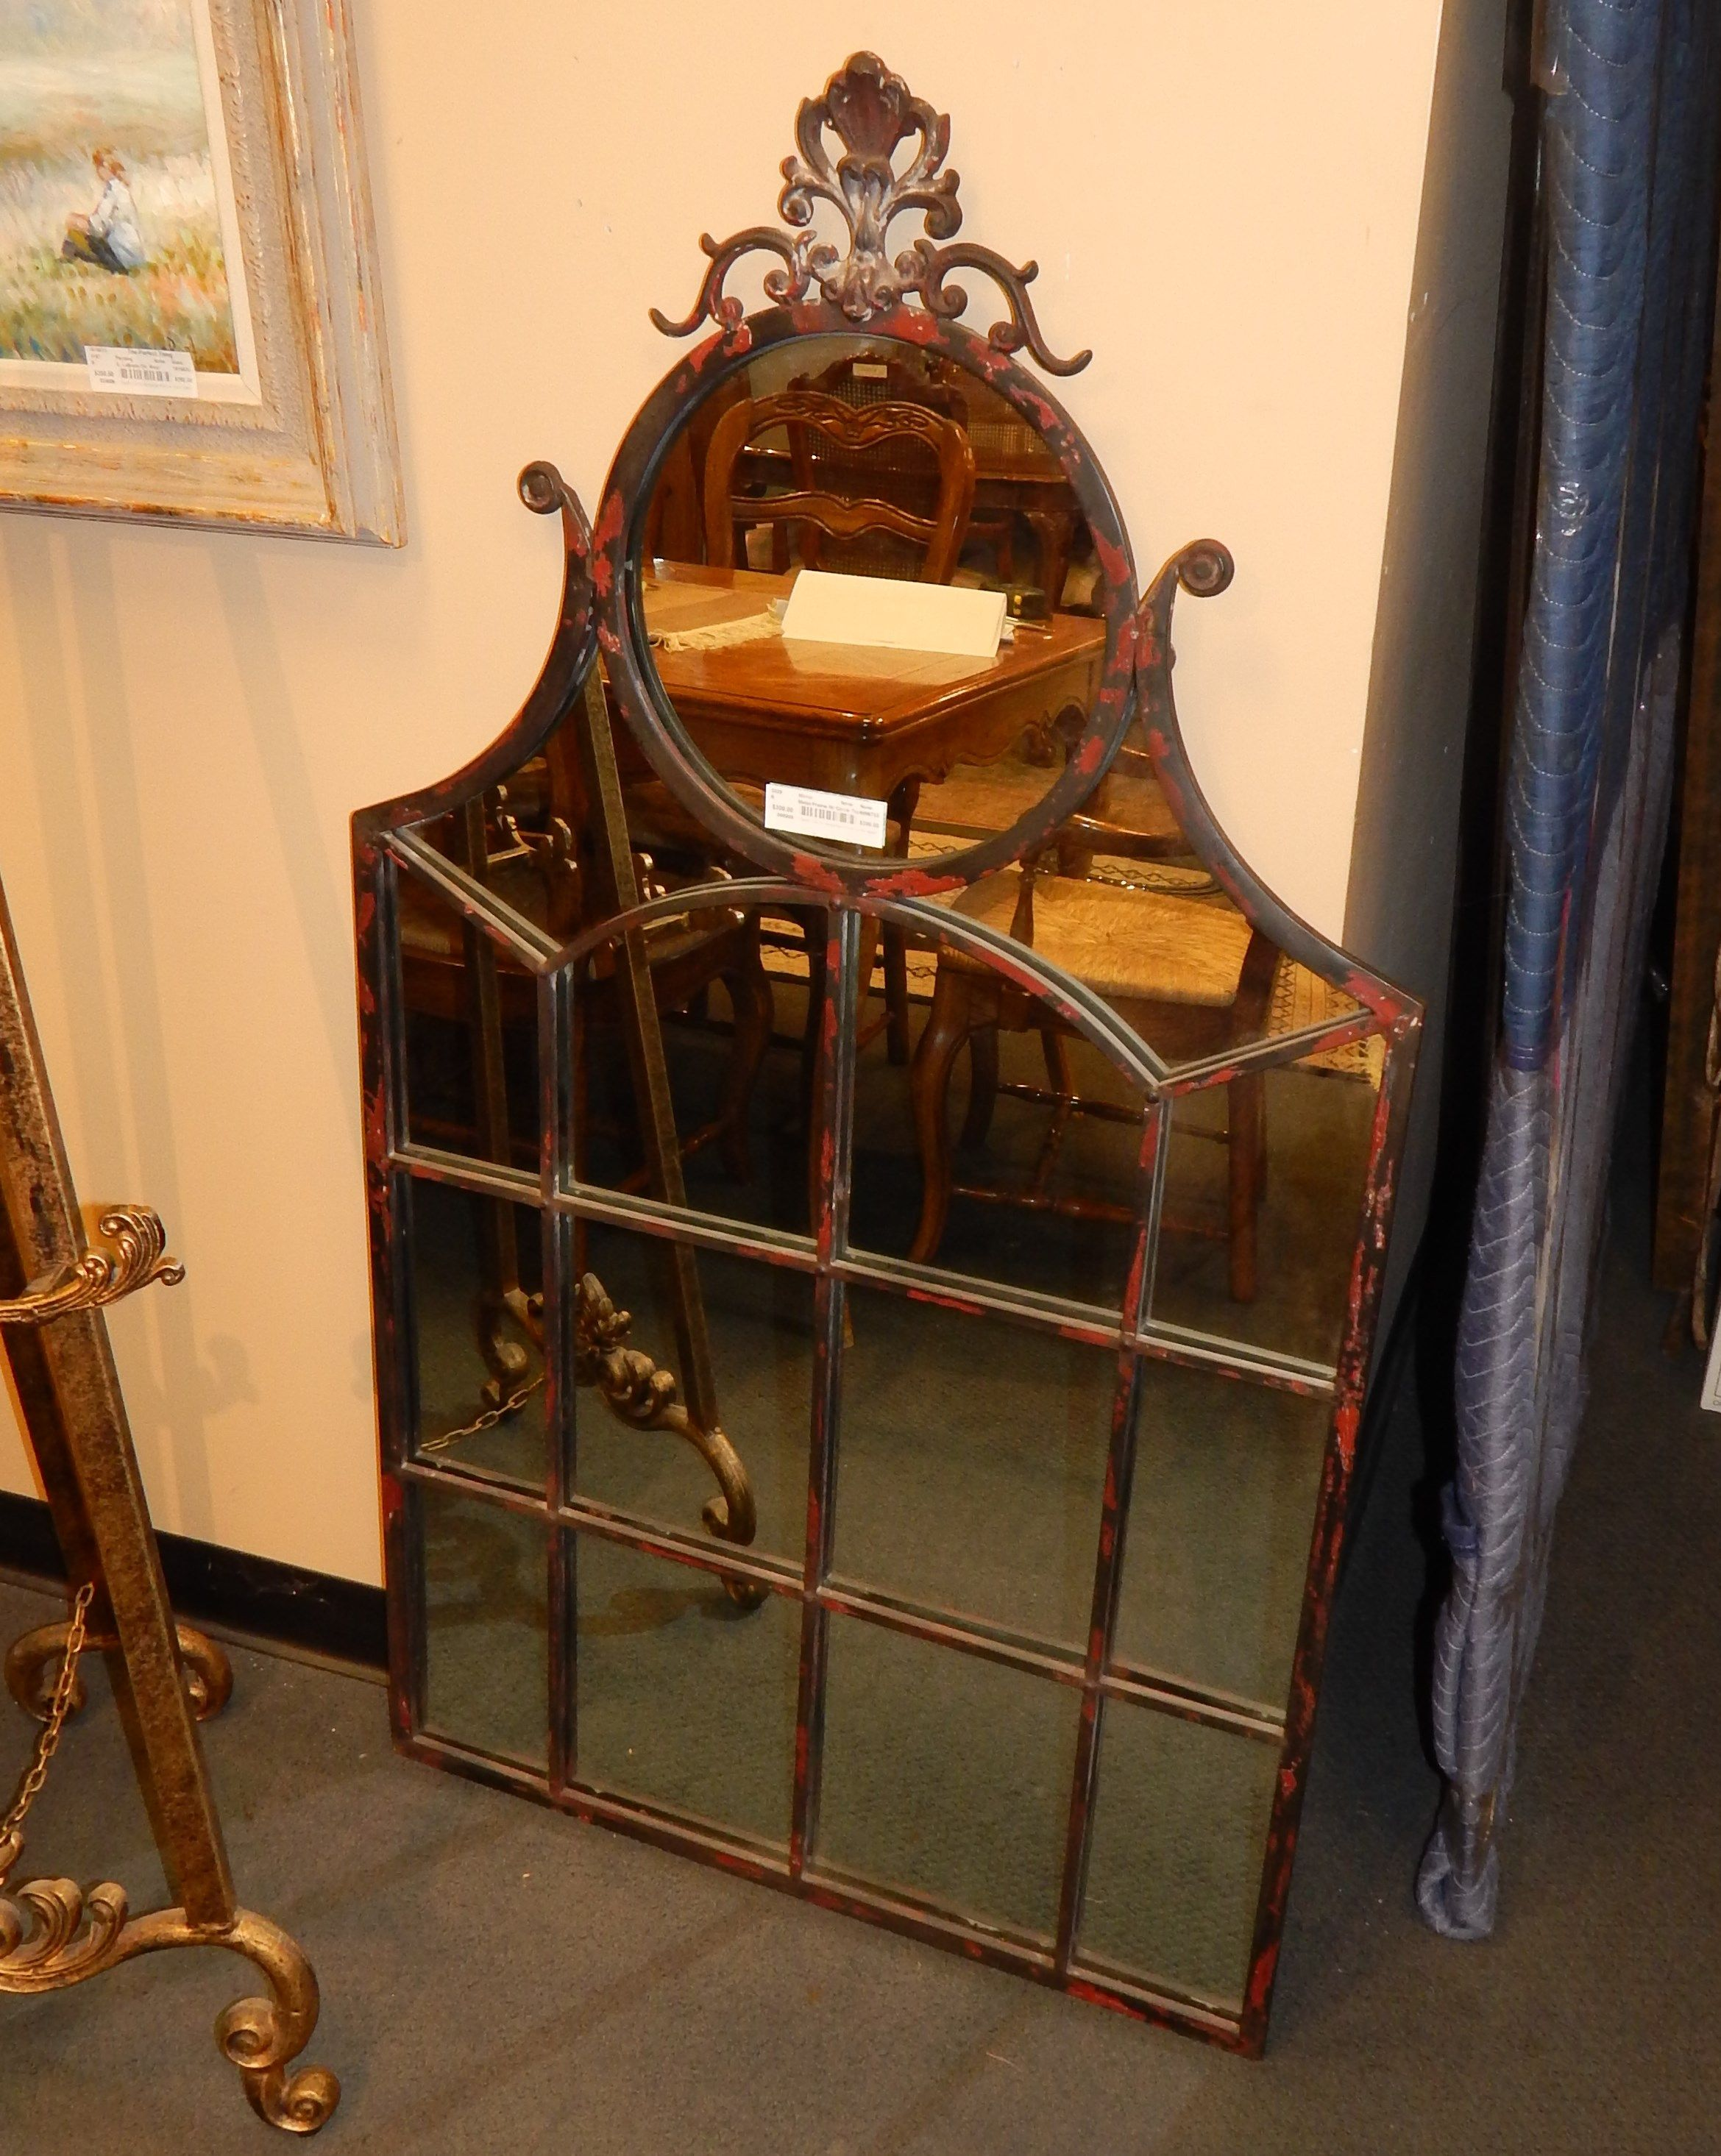 Metal Frame Mirror Distressed Look In Red And Brown Round